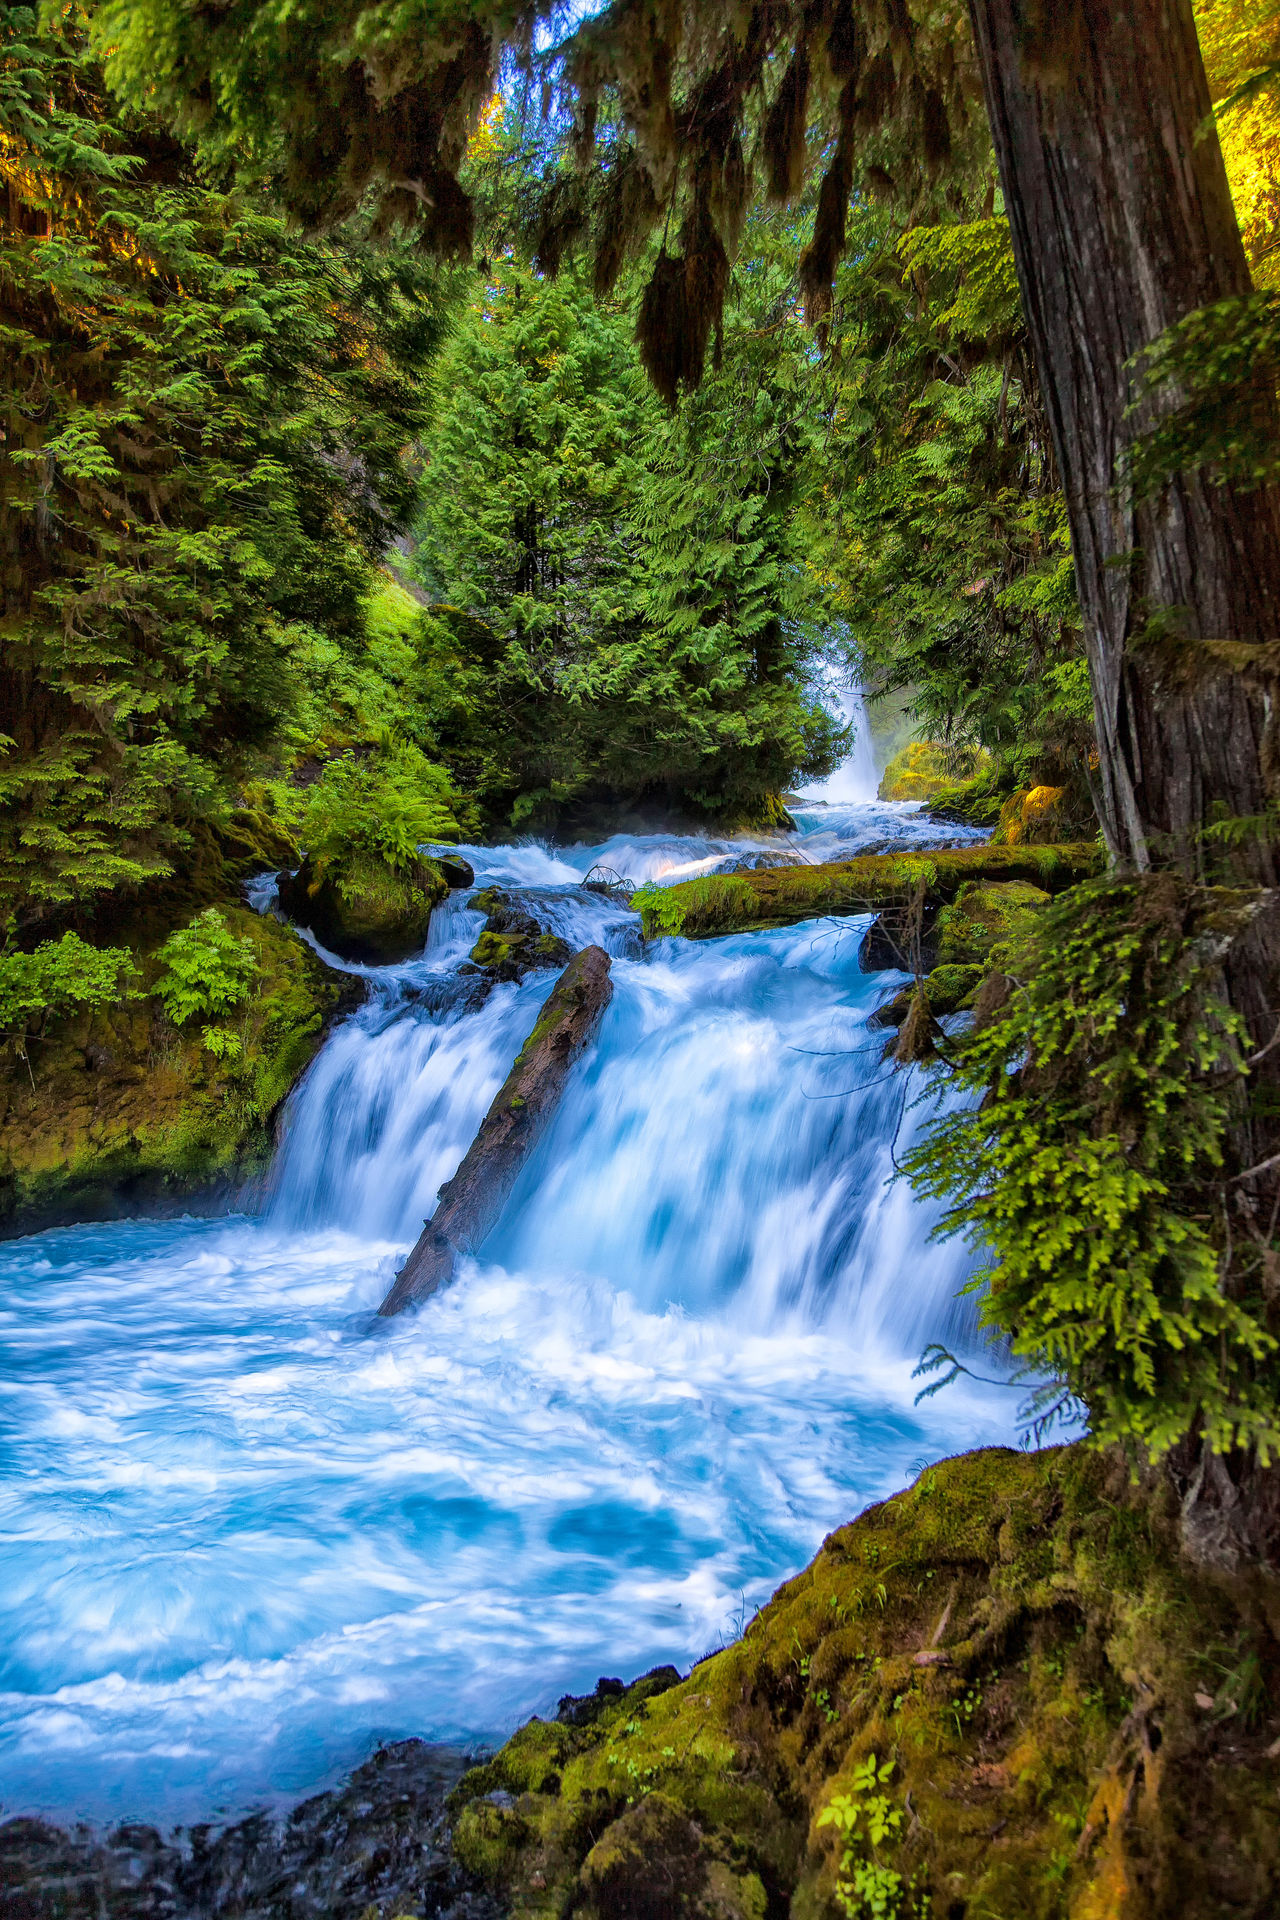 Beauty Beauty In Nature Day Environmental Conservation Flowing Water Forest Landscape Motion Nature Nature Reserve No People Outdoors River Scenics Social Issues Stream - Flowing Water Travel Destinations Tree Vacations Water Waterfall